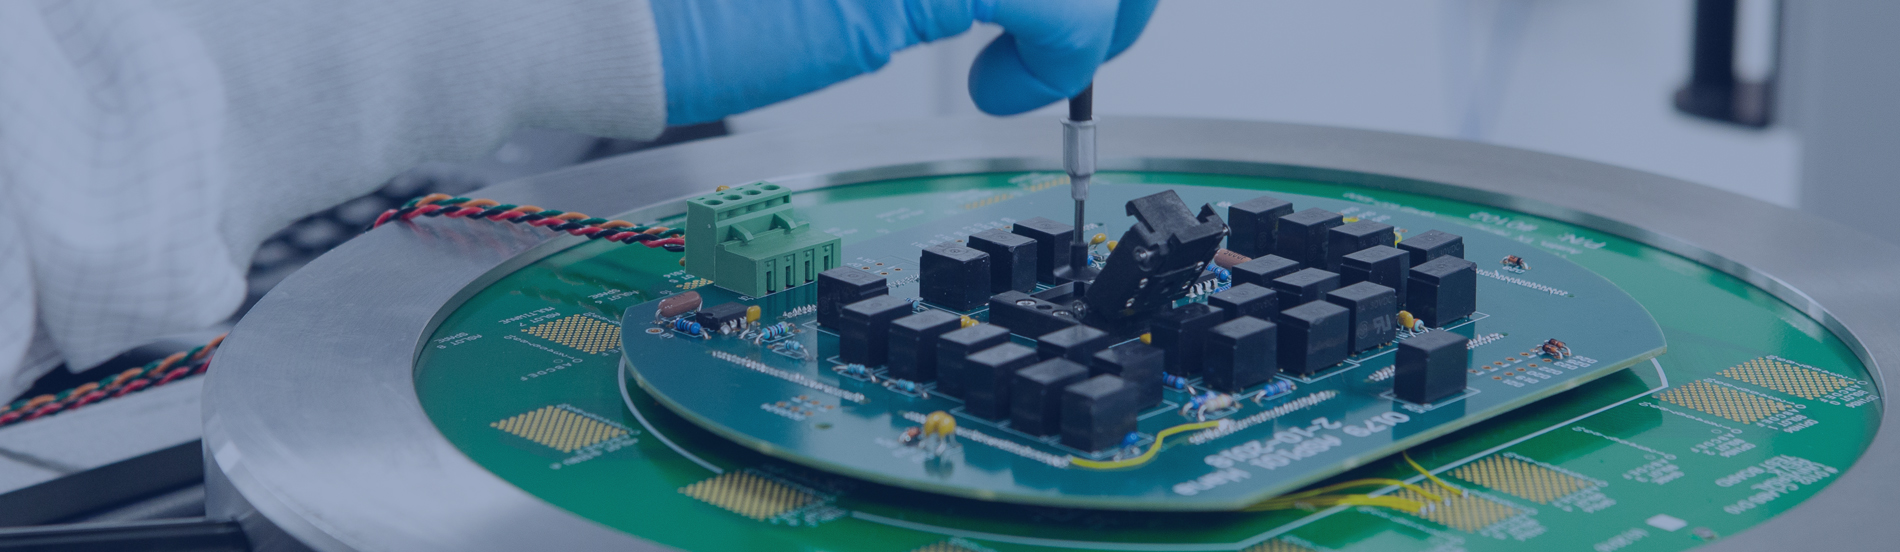 Semiconductor Engineering and Services | Criteria Labs